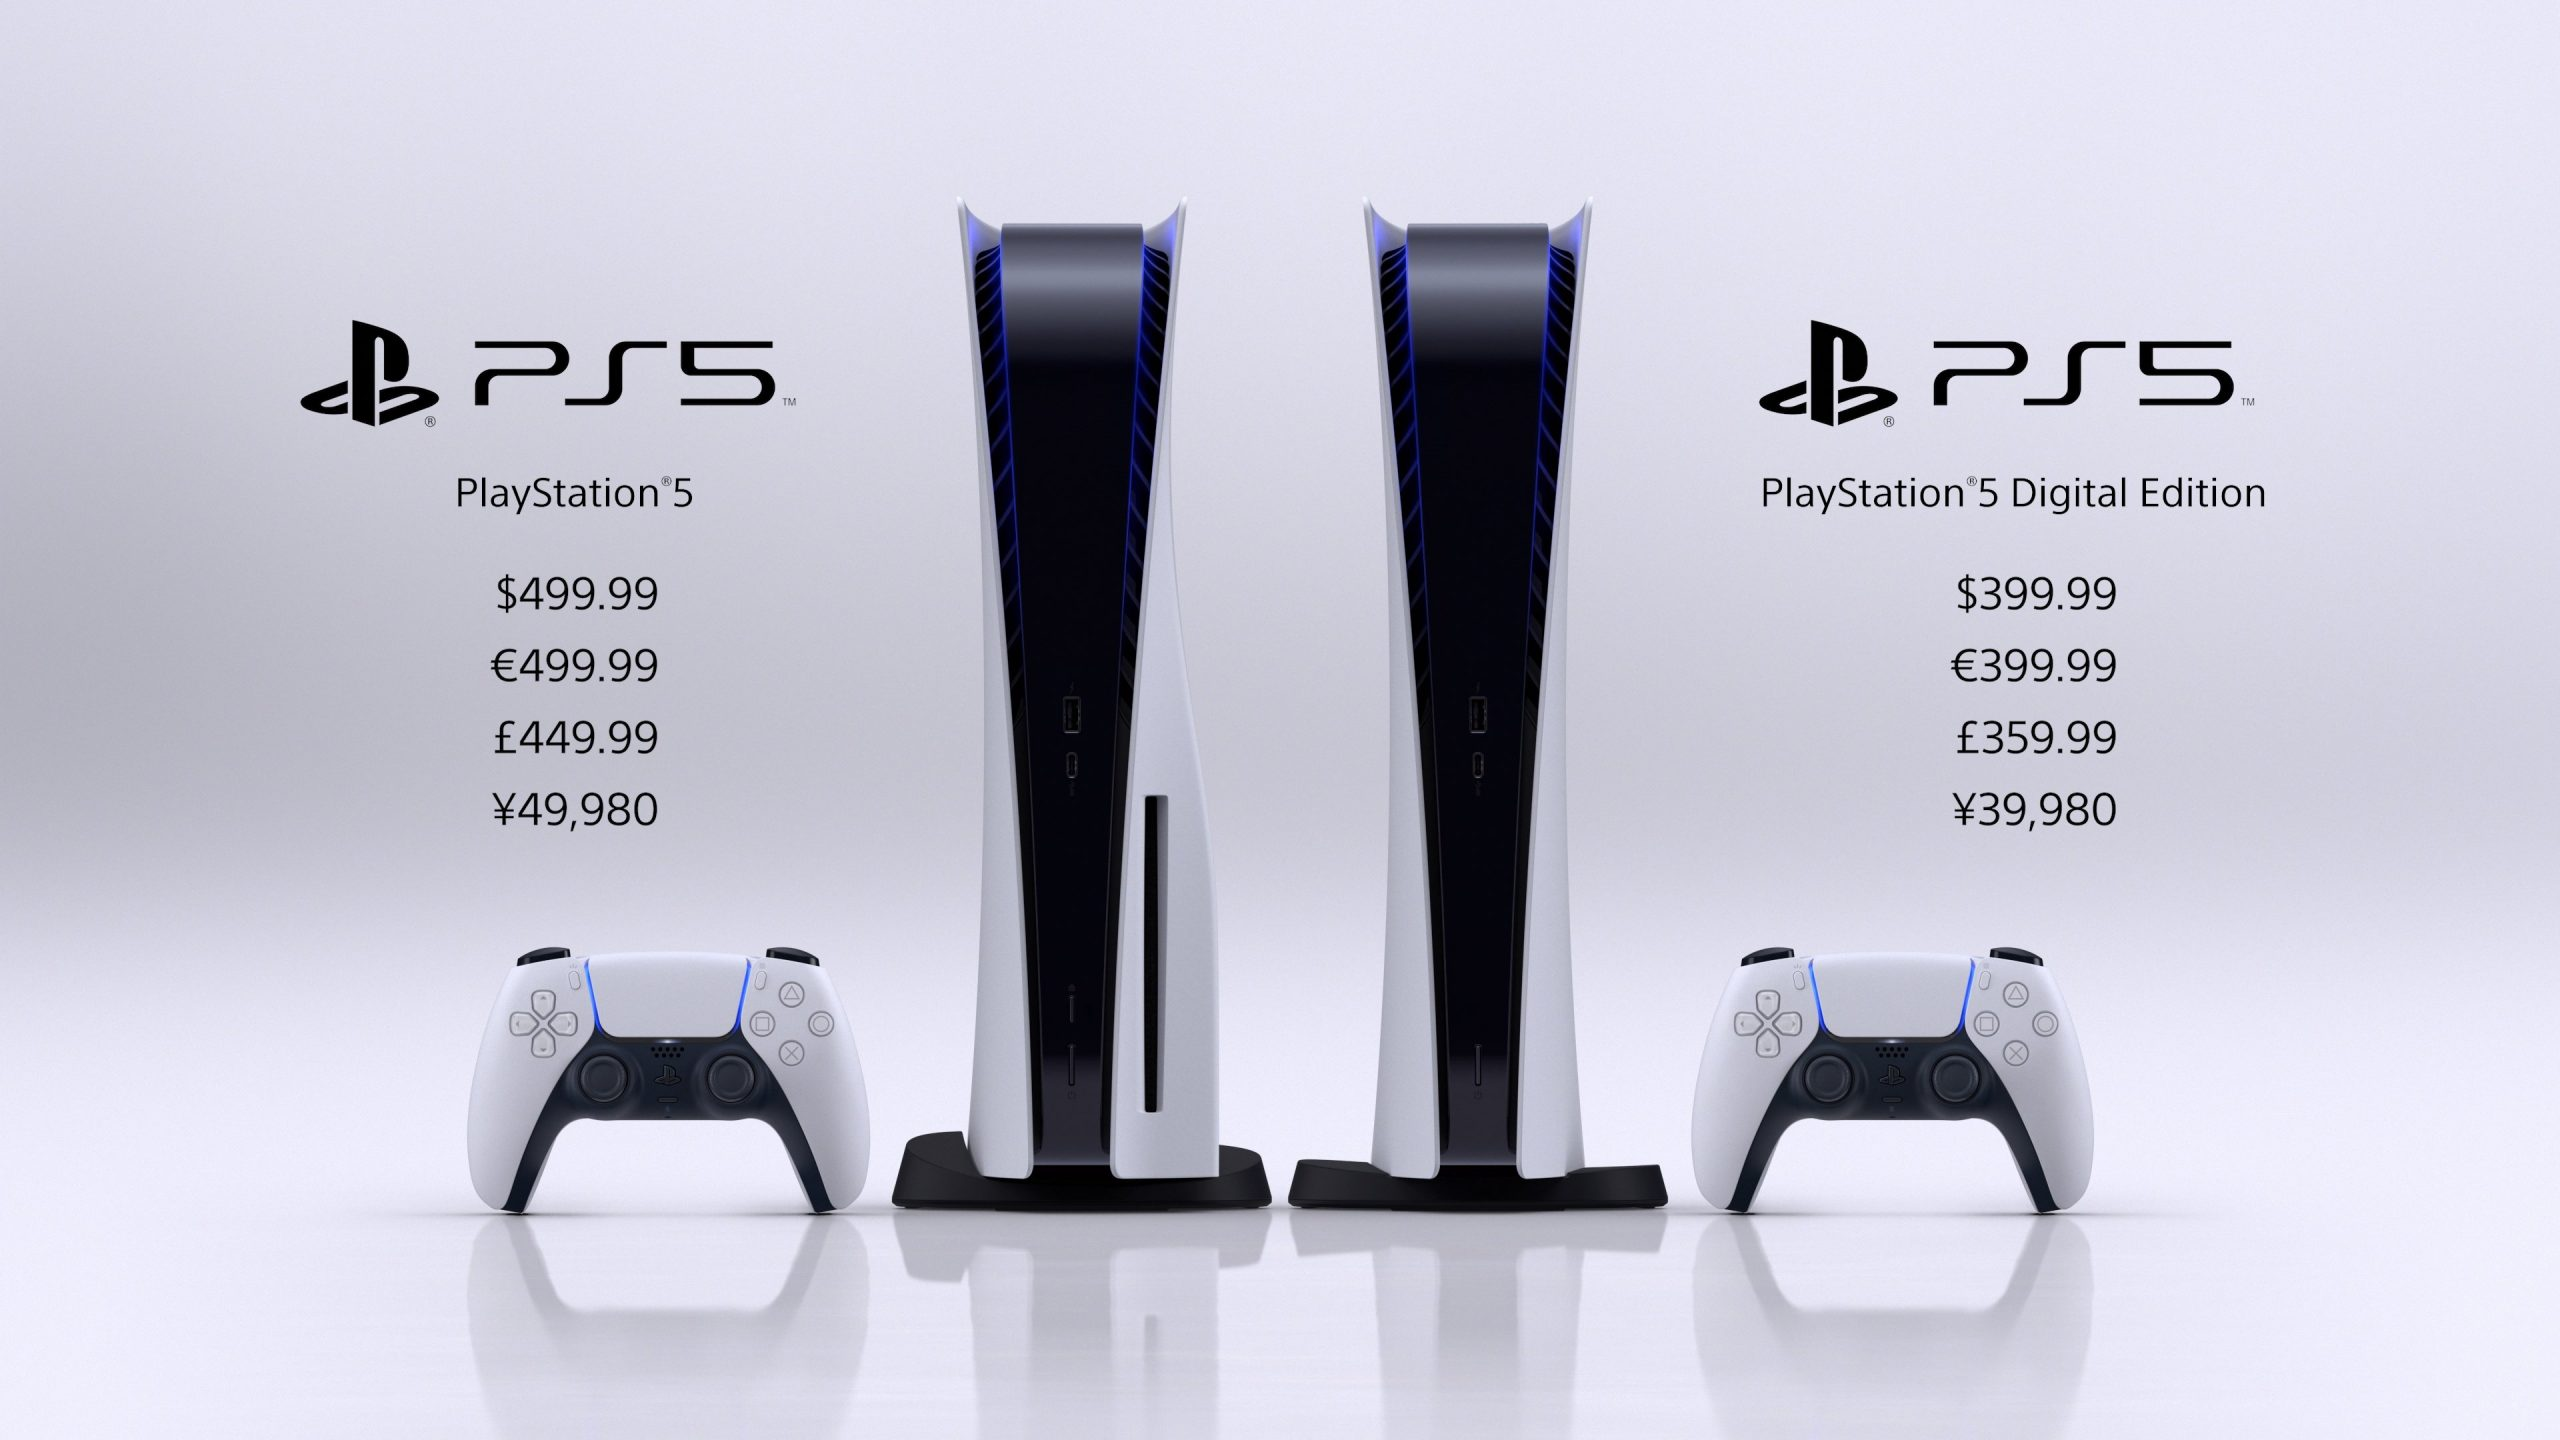 PS5 and PS5 Digital Edition Pricing